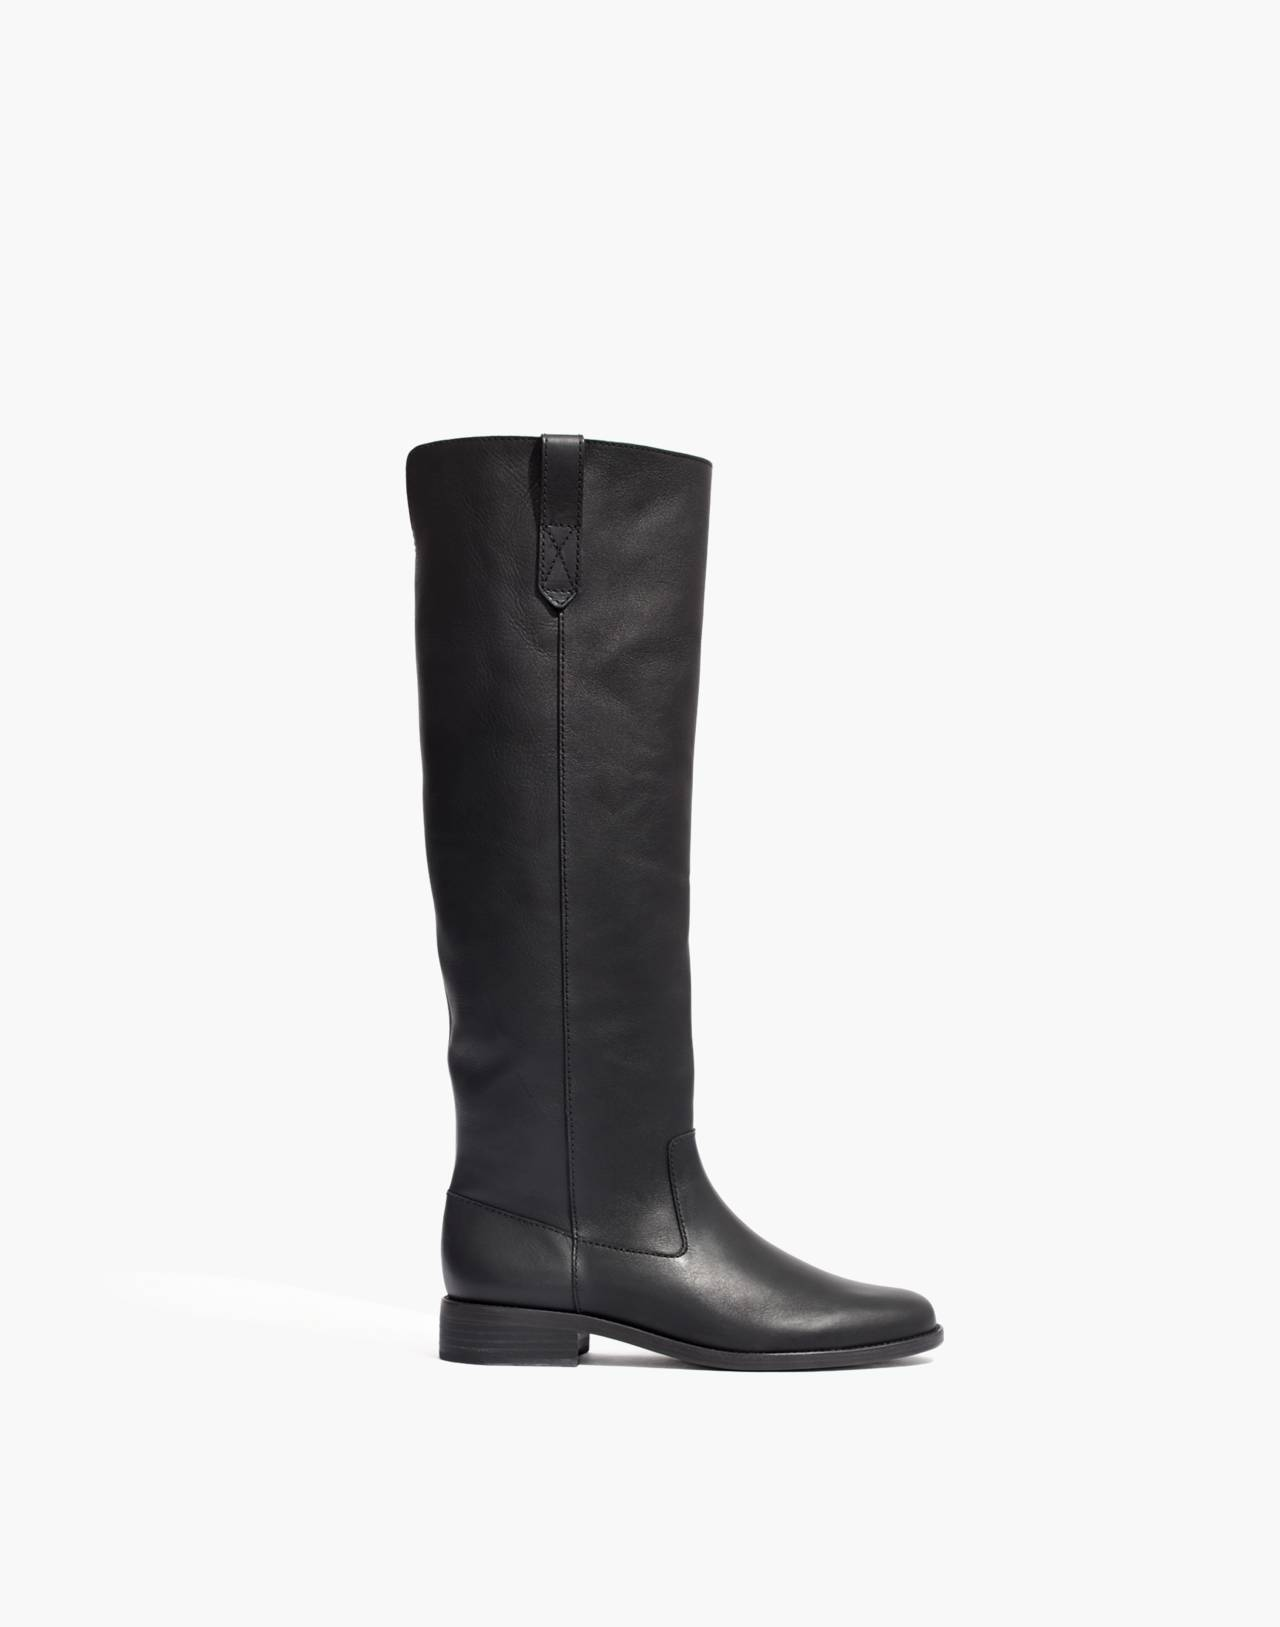 The Allie Knee-High Boot in true black image 1